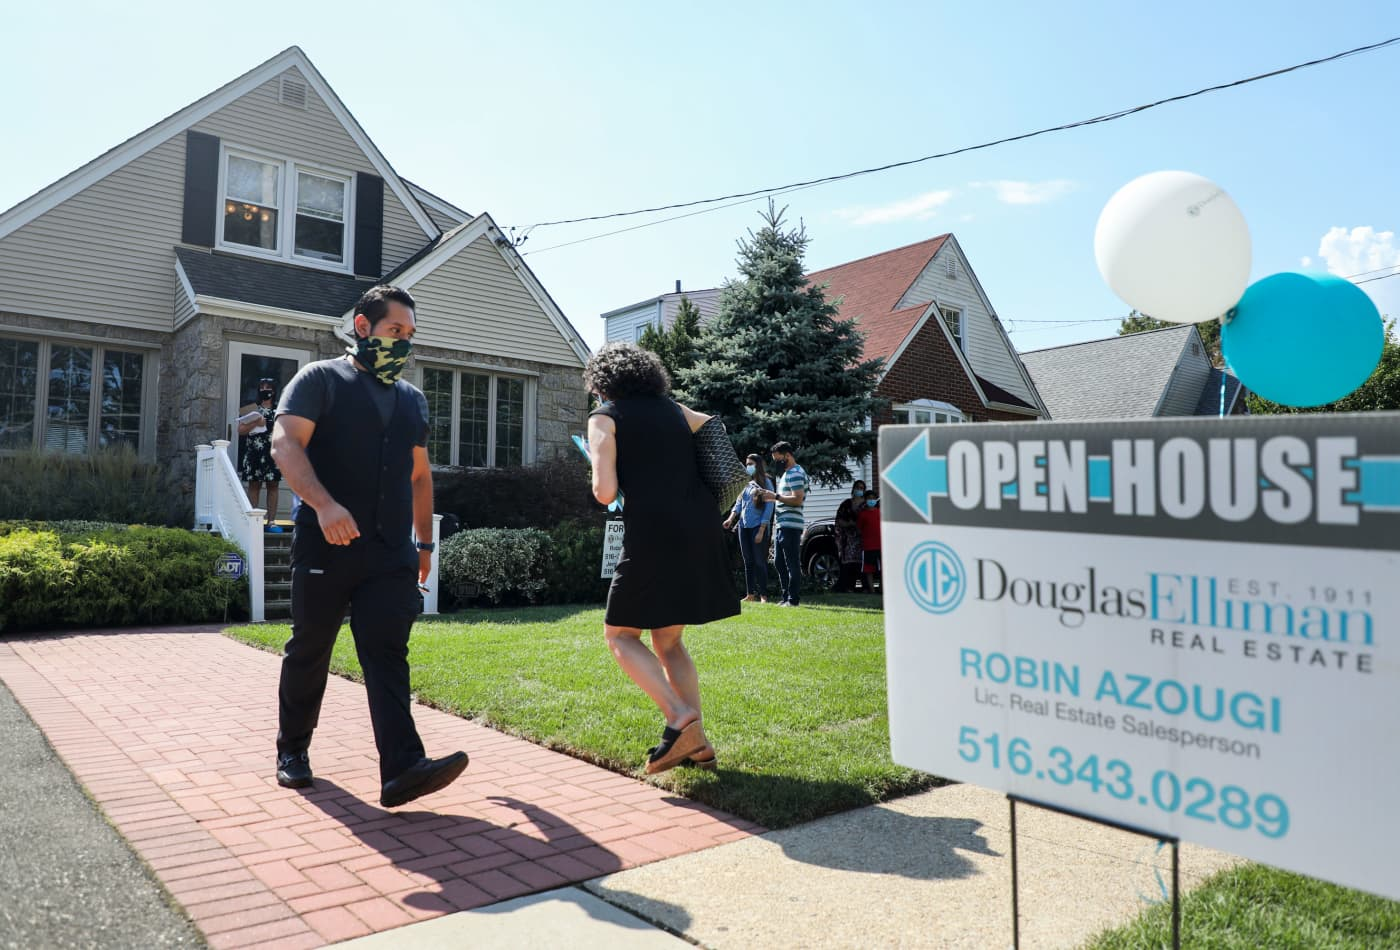 Weekly mortgage demand stalls as rates rise and fierce competition hurts home sales